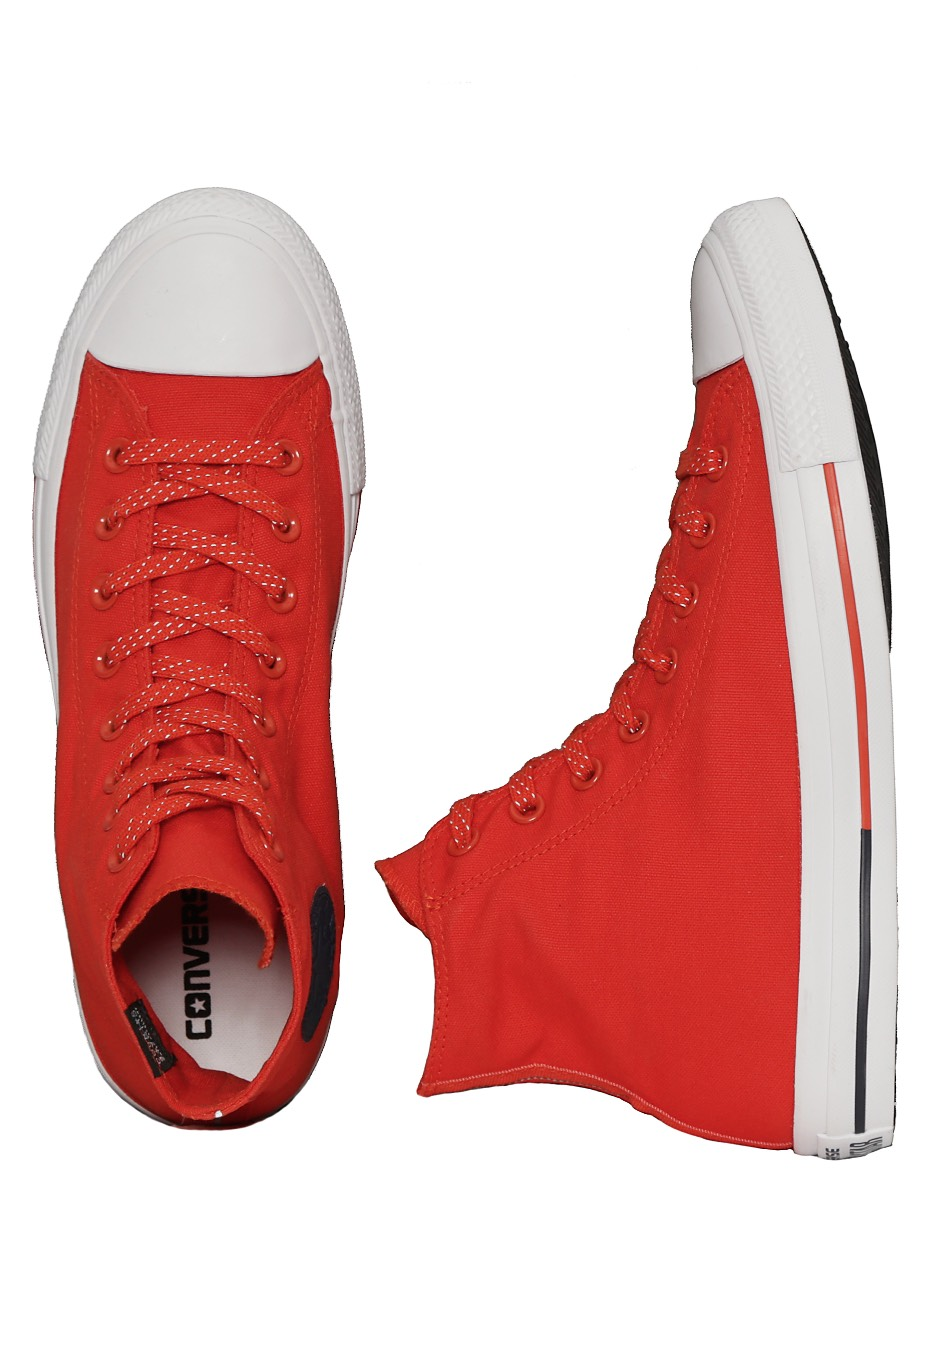 f2f81924833 Converse - Chuck Taylor All Star Hi Signal Red White Obsidian - Shoes -  Impericon.com Worldwide